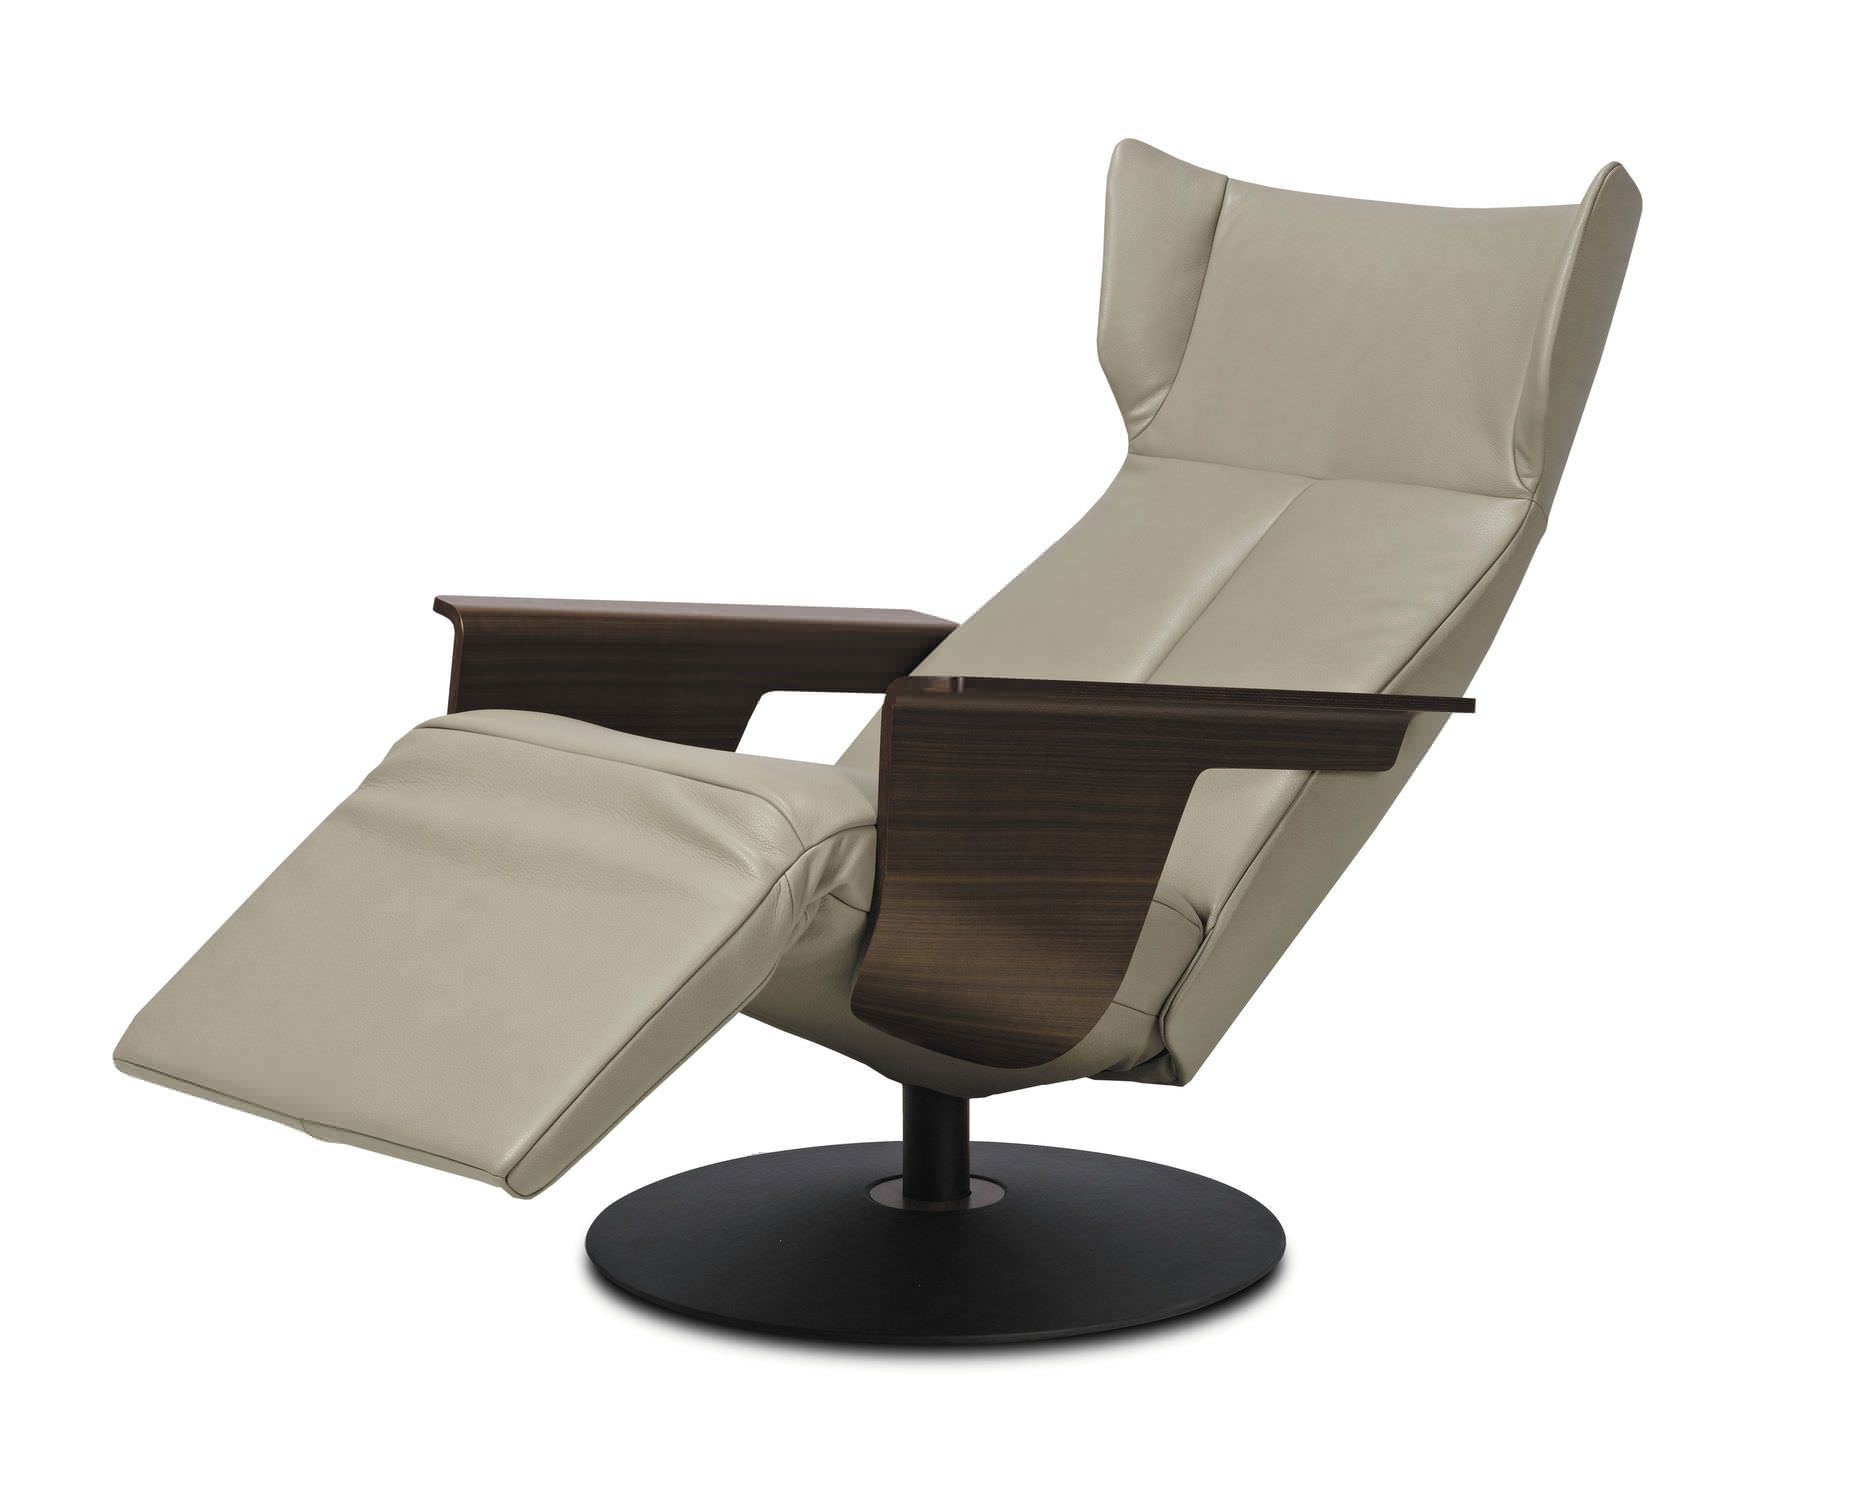 Contemporary Recliner Chairs For Your Furniture Ideas Contemporary Reclining Leat Contemporary Recliner Chairs Leather Recliner Chair Comfy Armchair